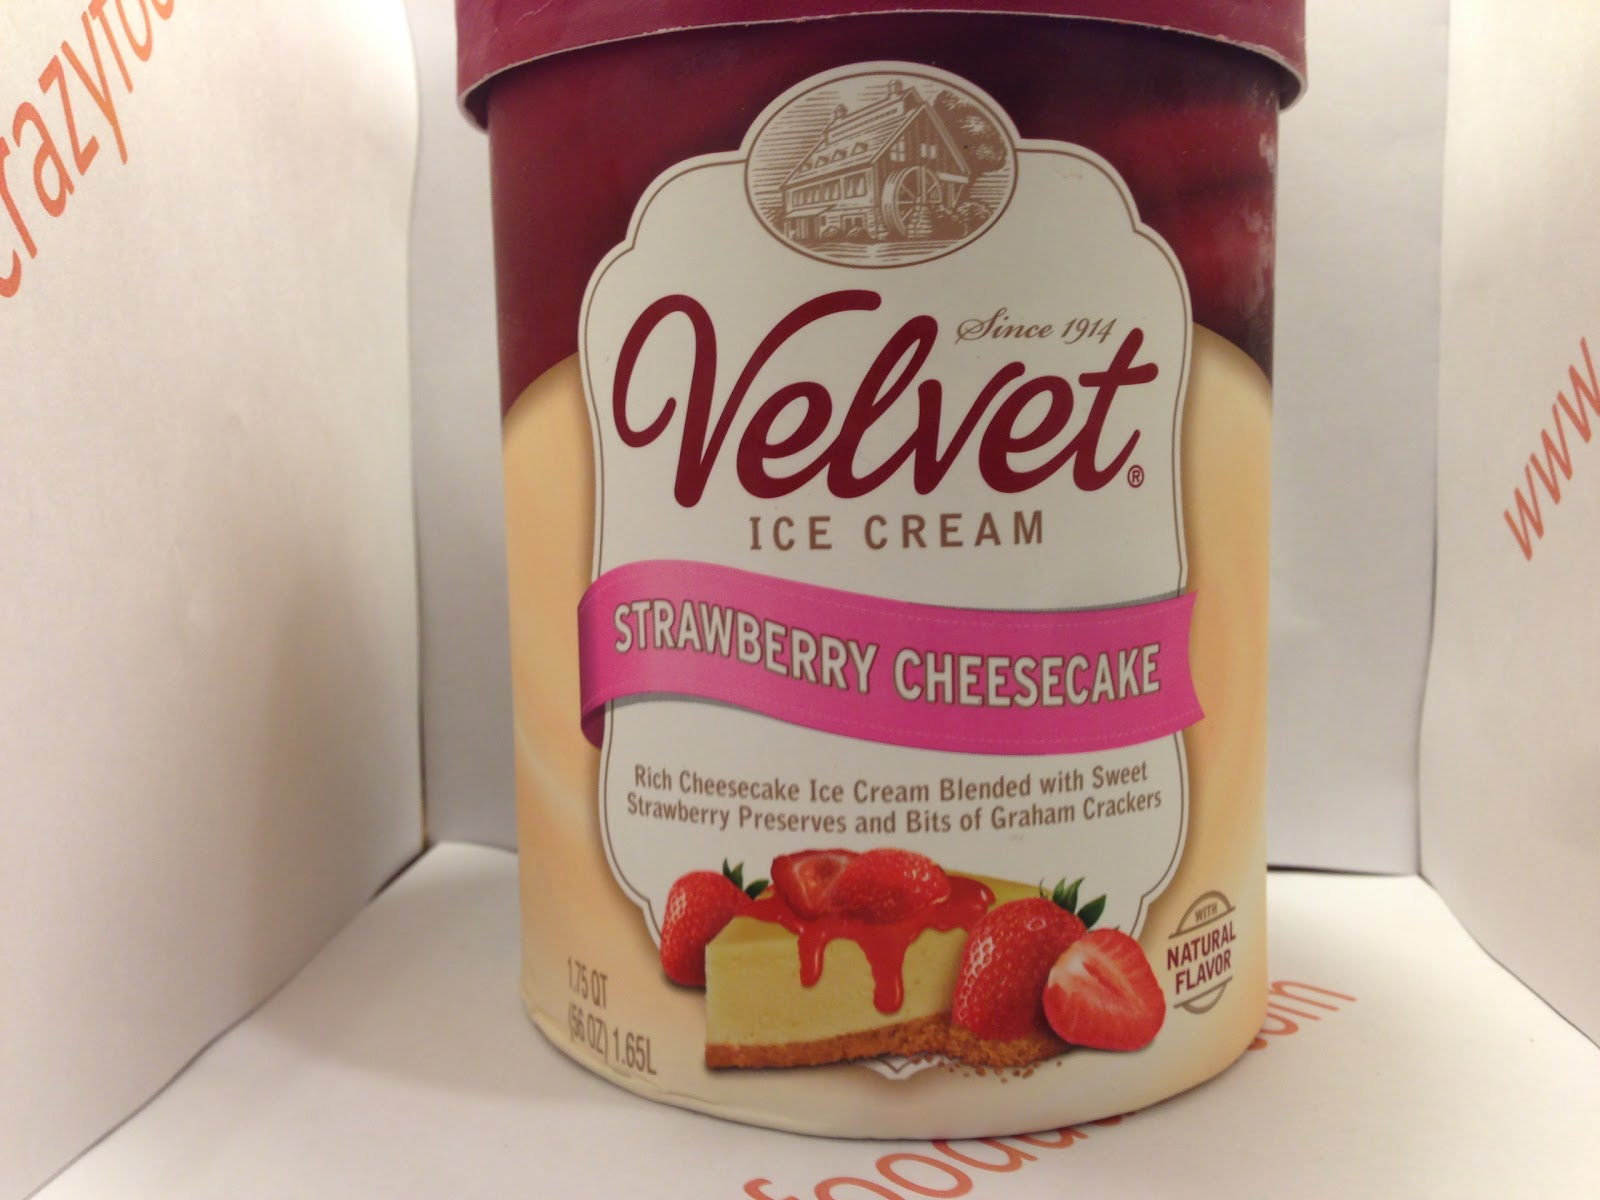 velvet ice cream flavors